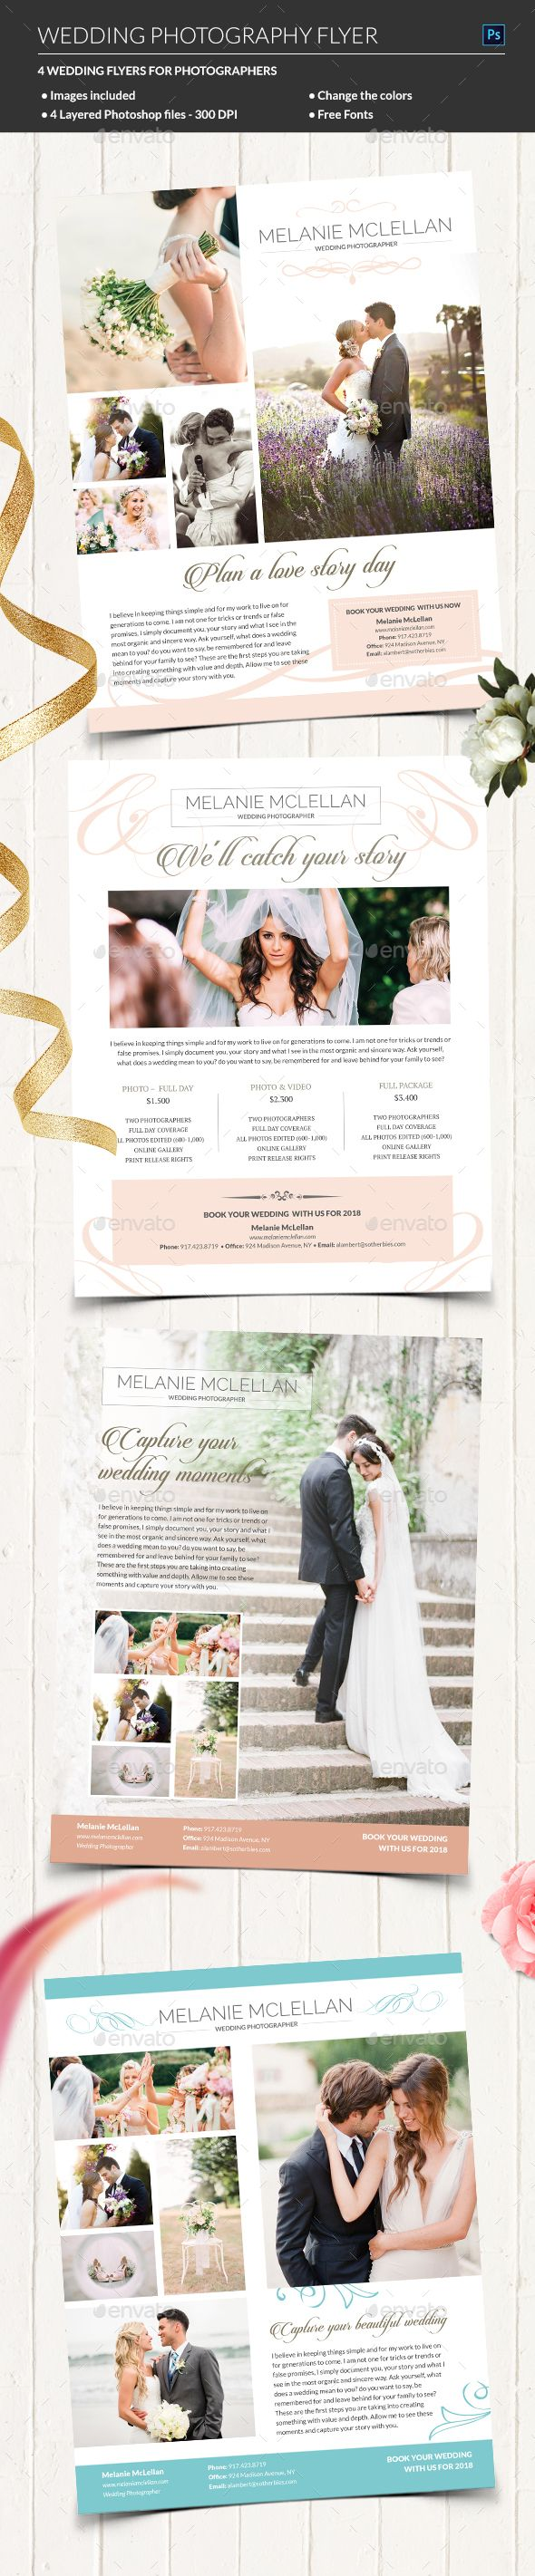 Wedding Photography Flyer — Photoshop Psd #simple #just Married • Available  Here → Https://graphicriver.net/item/wedding-Photography-Flyer/19619779?ref=